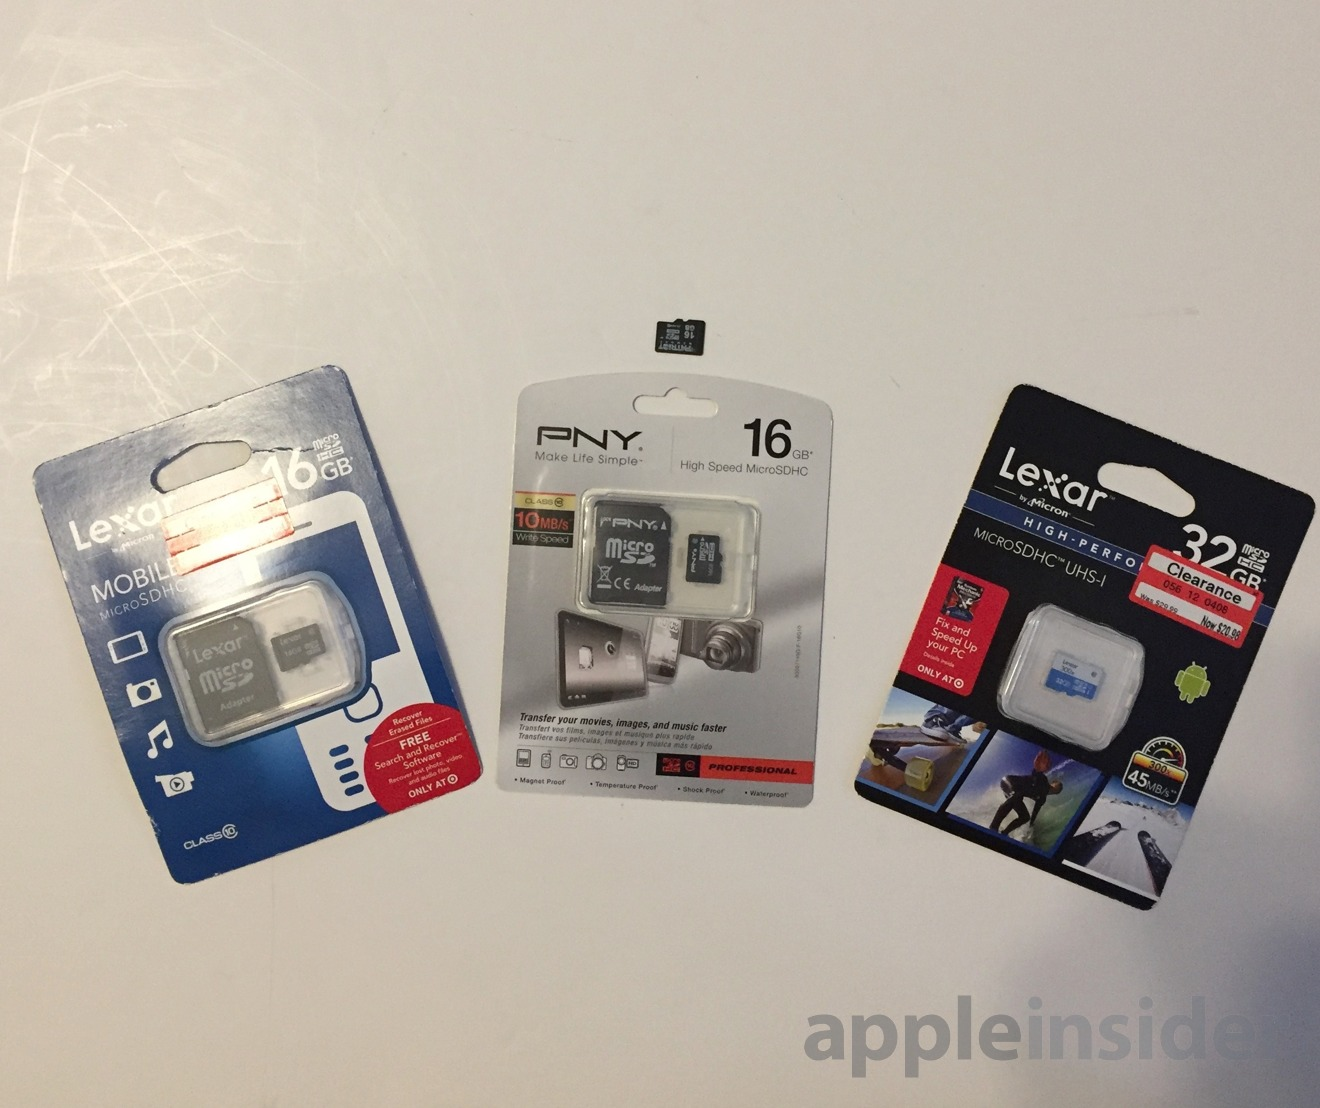 SD card options for iPod upgrade